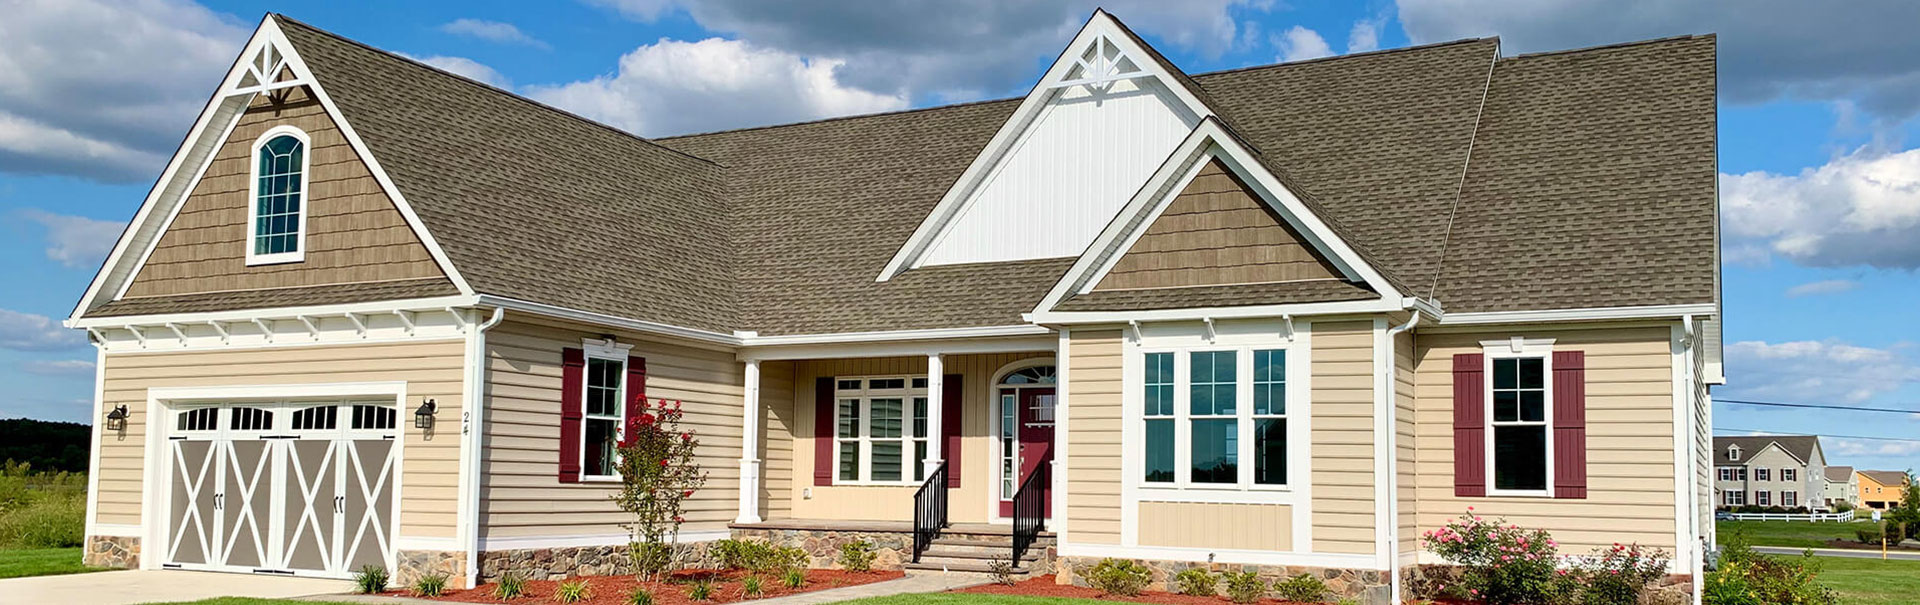 Smyrna Roofing Company, Deck Builder and Gutter Company